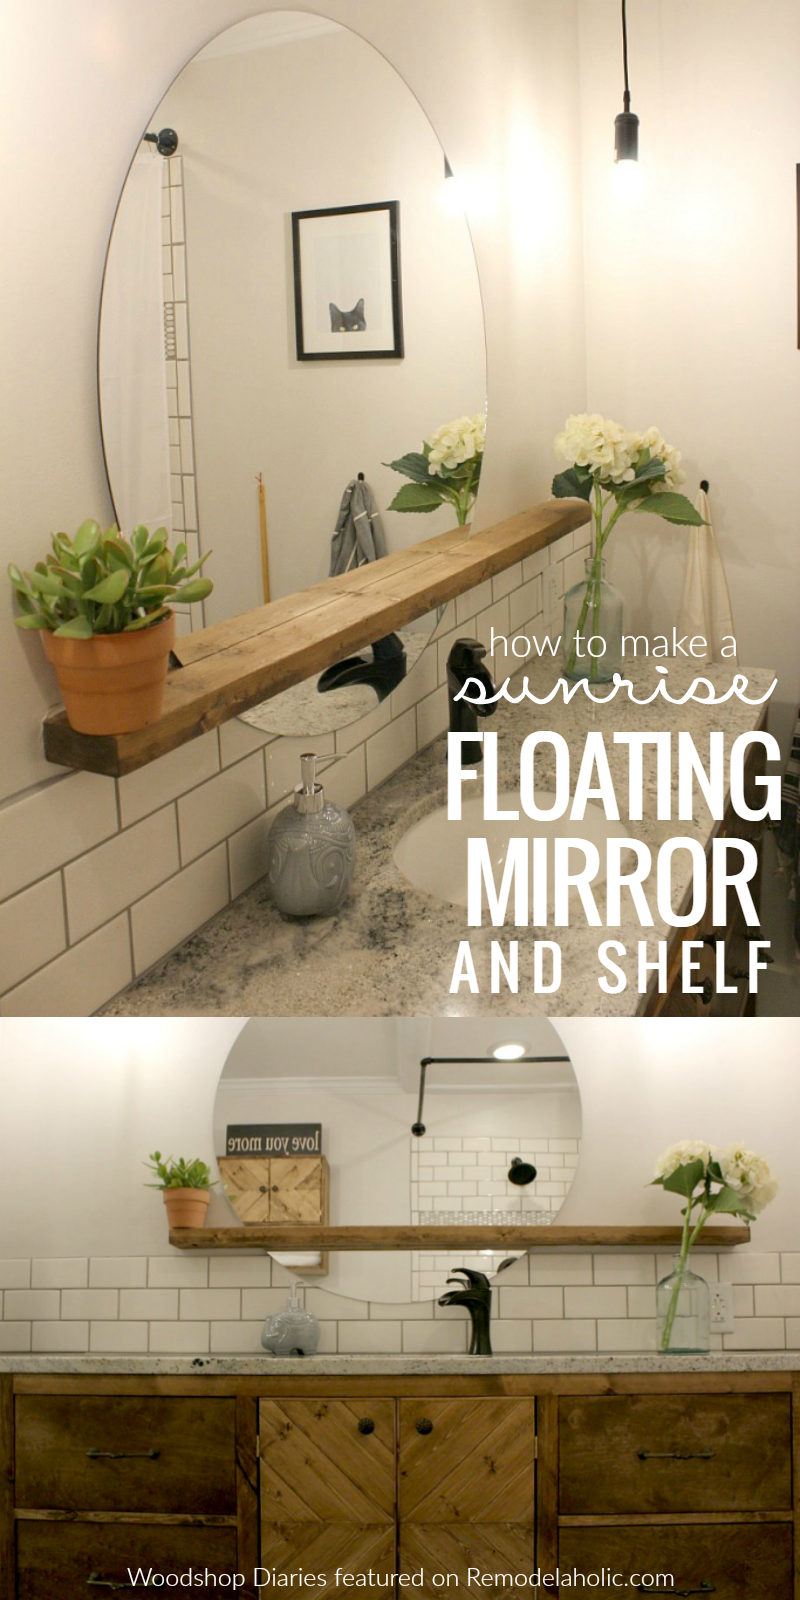 Give An Inexpensive Basic Round Mirror A Modern Update With This Diy Sunrise Floating And Shelf Perfect For Bathroom Vanity But Great